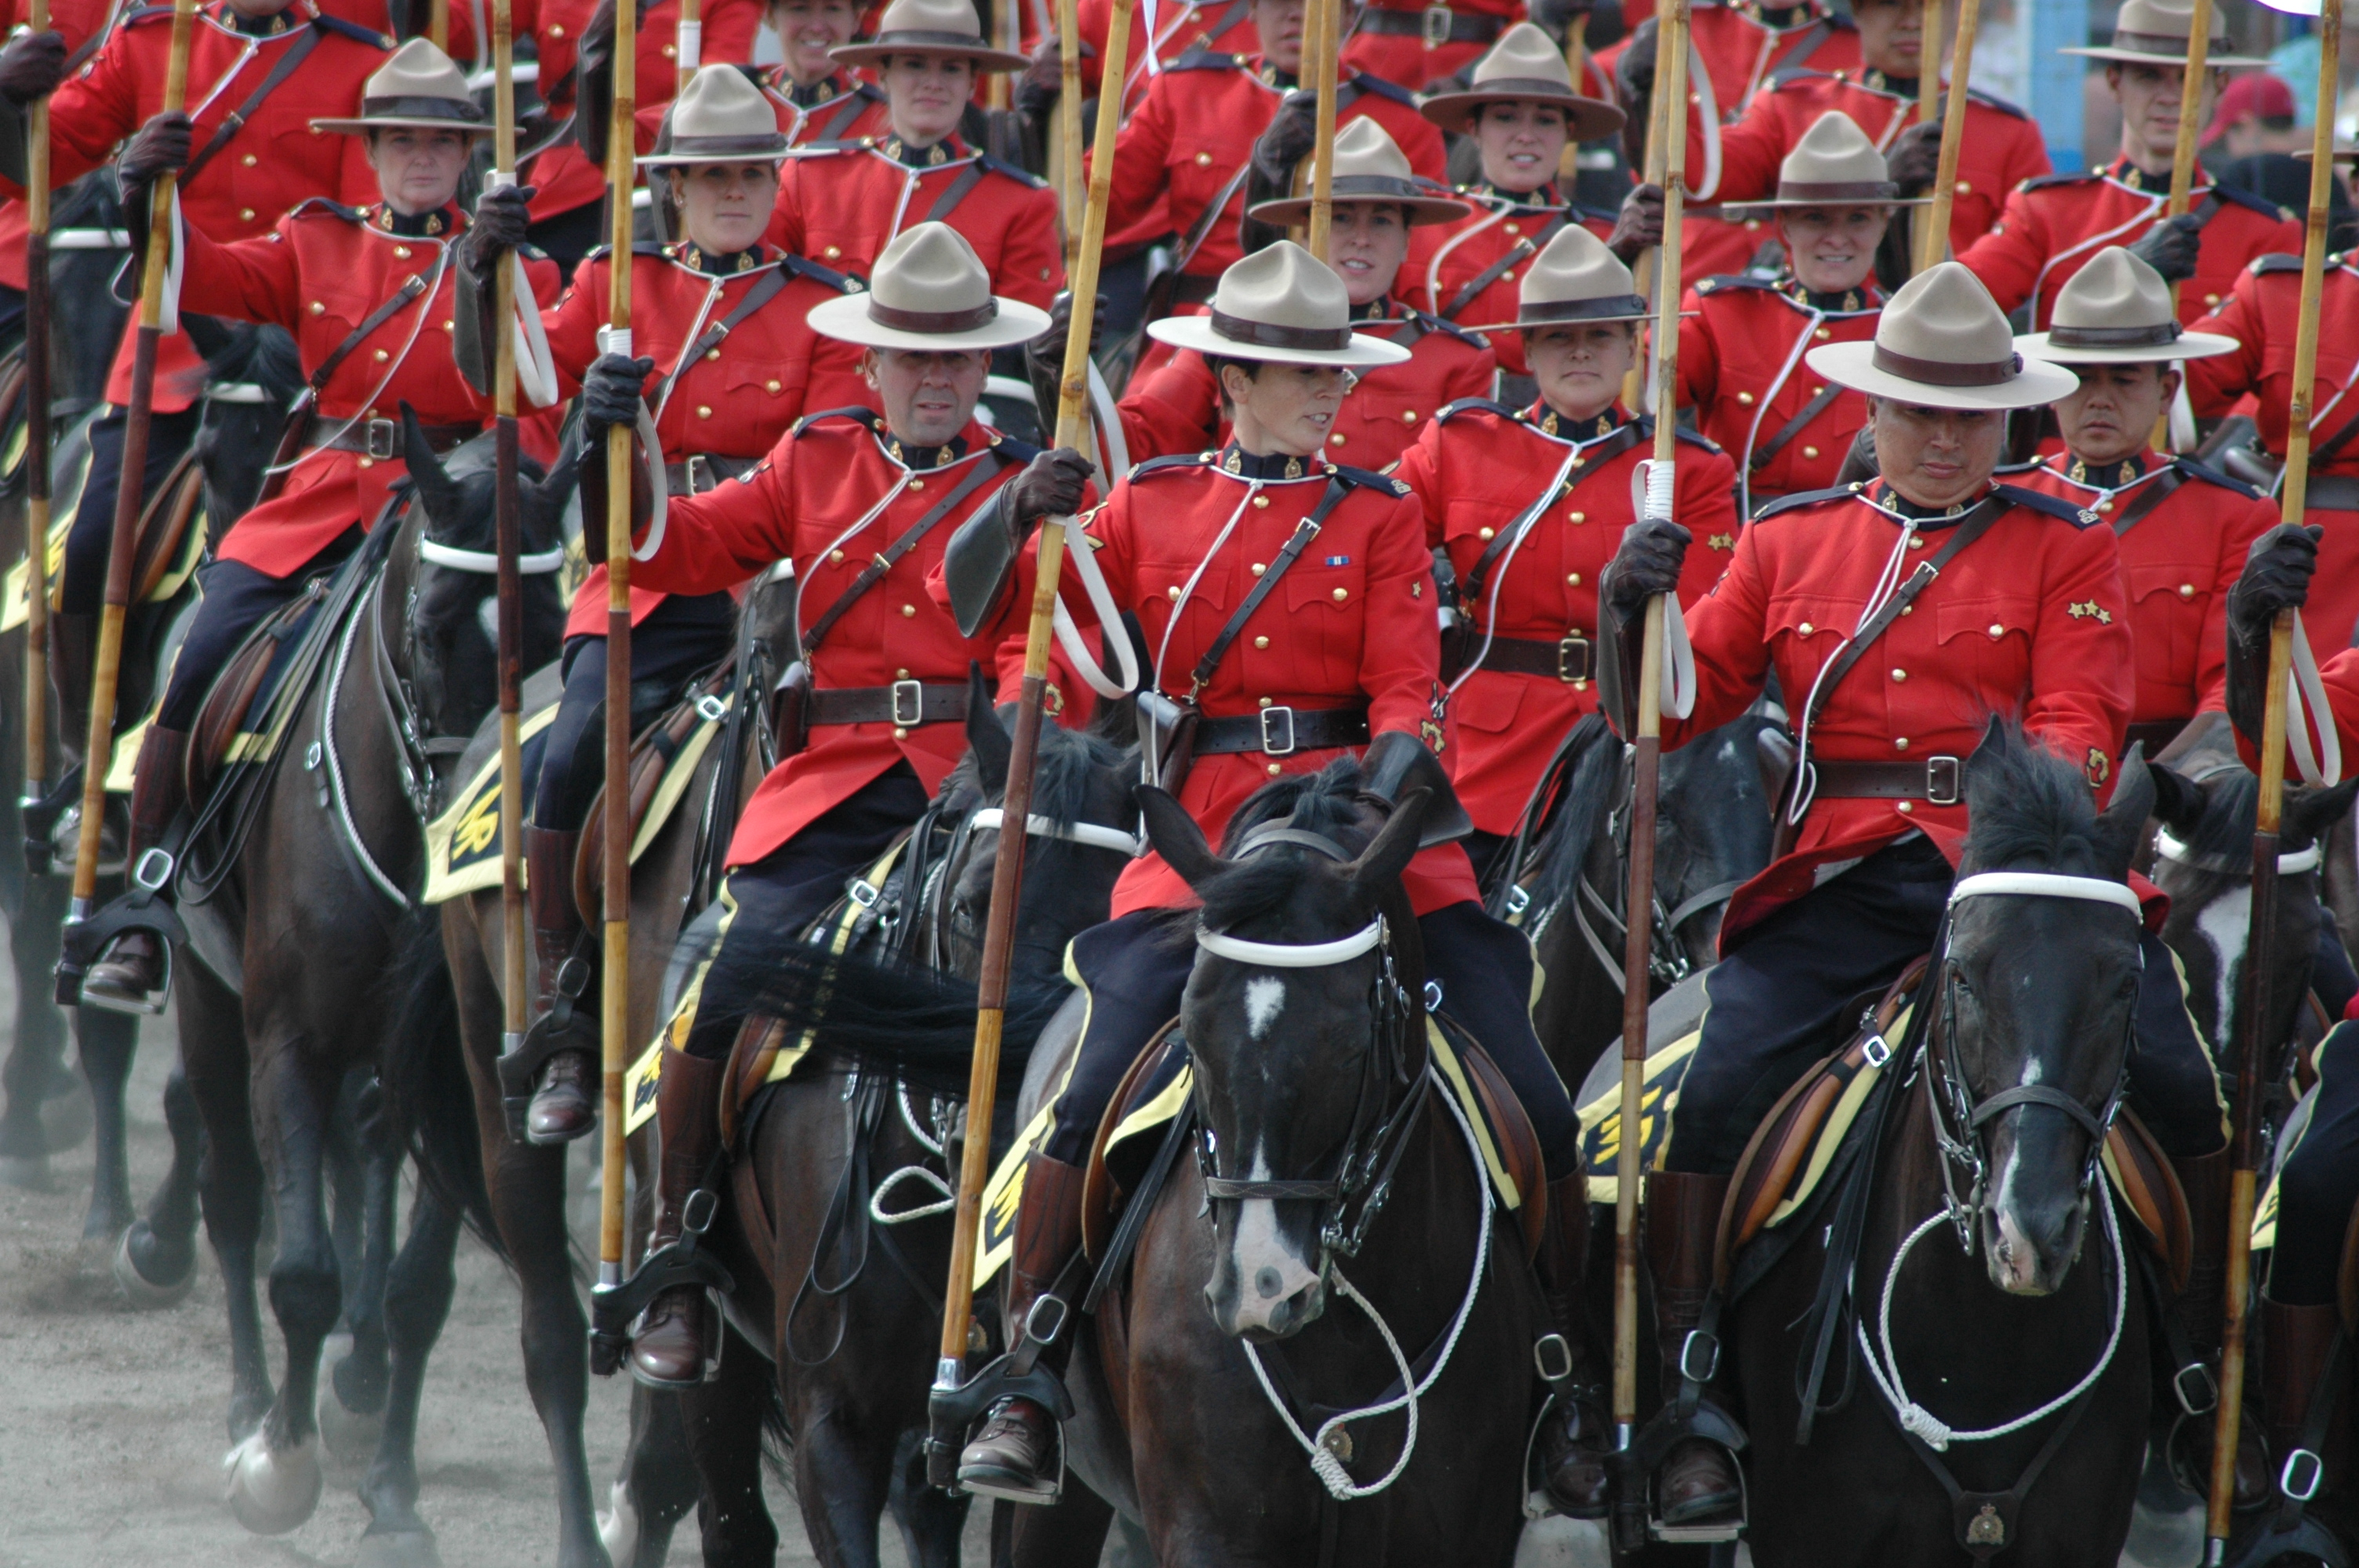 Chinese Steroid Powder Seized By Royal Canadian Mounted Police